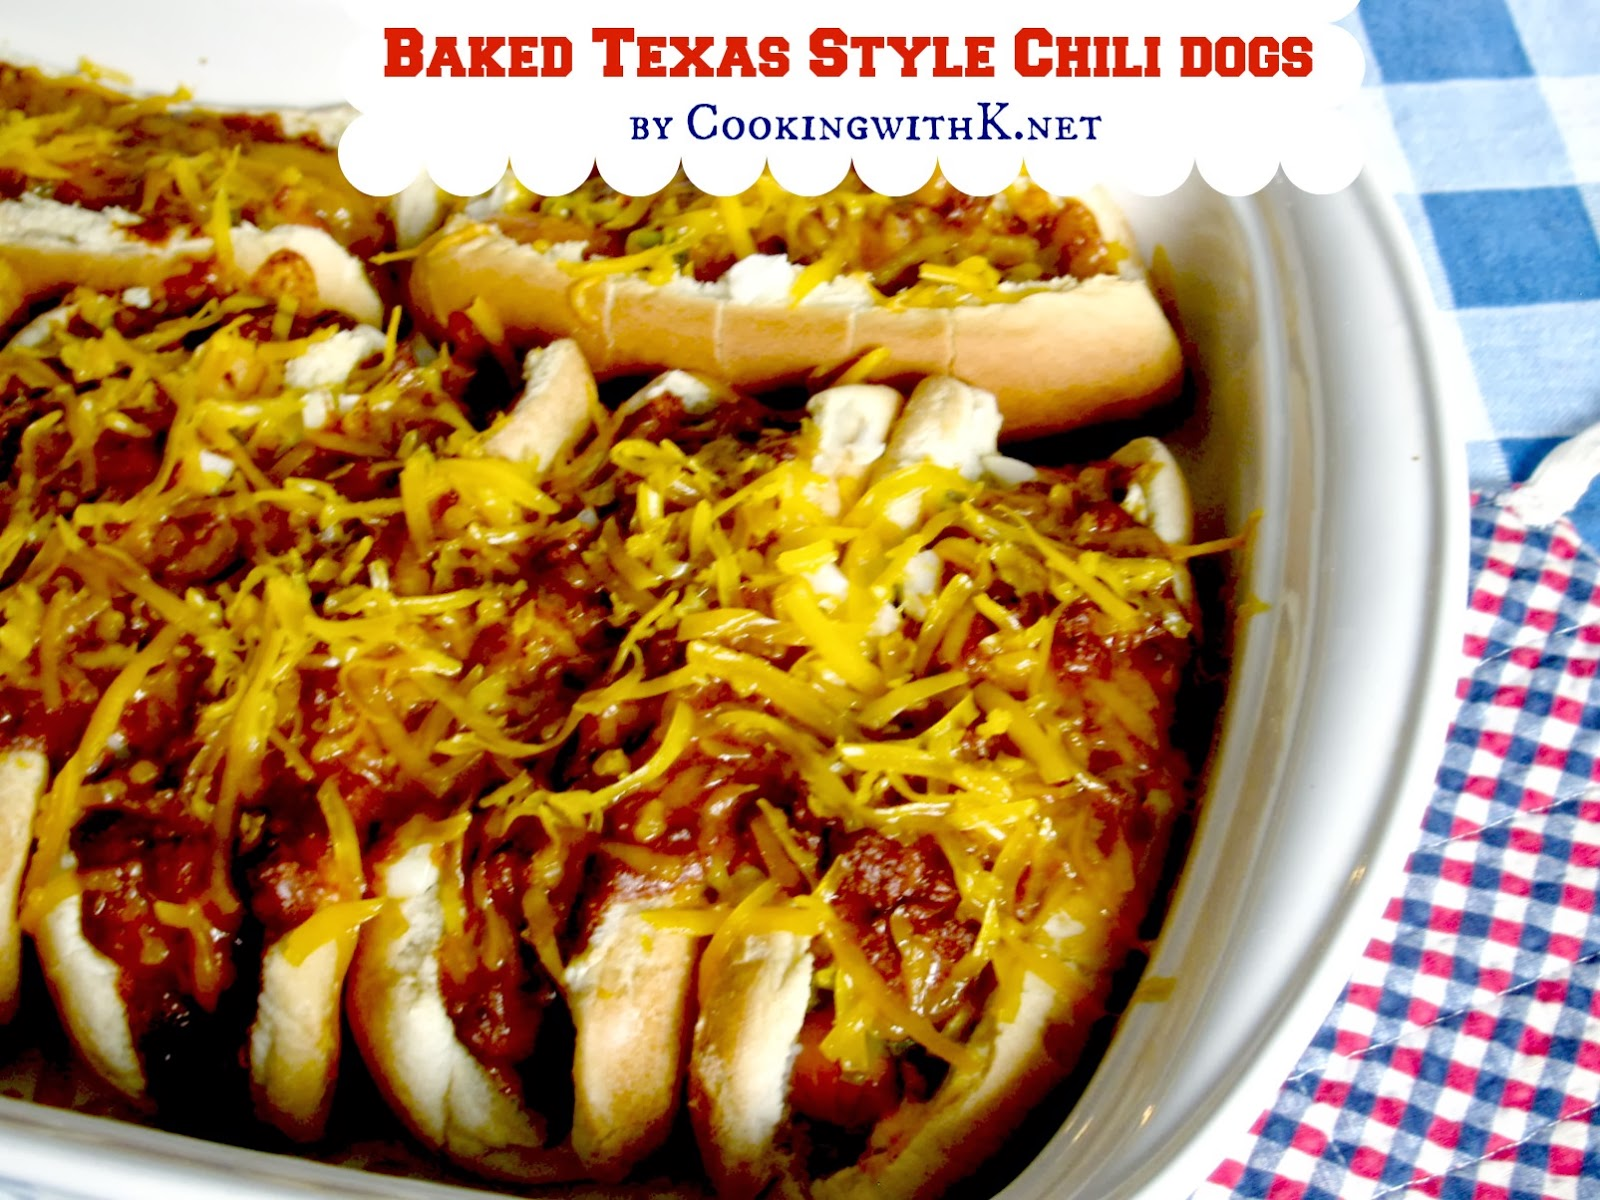 Baked Chili Dogs